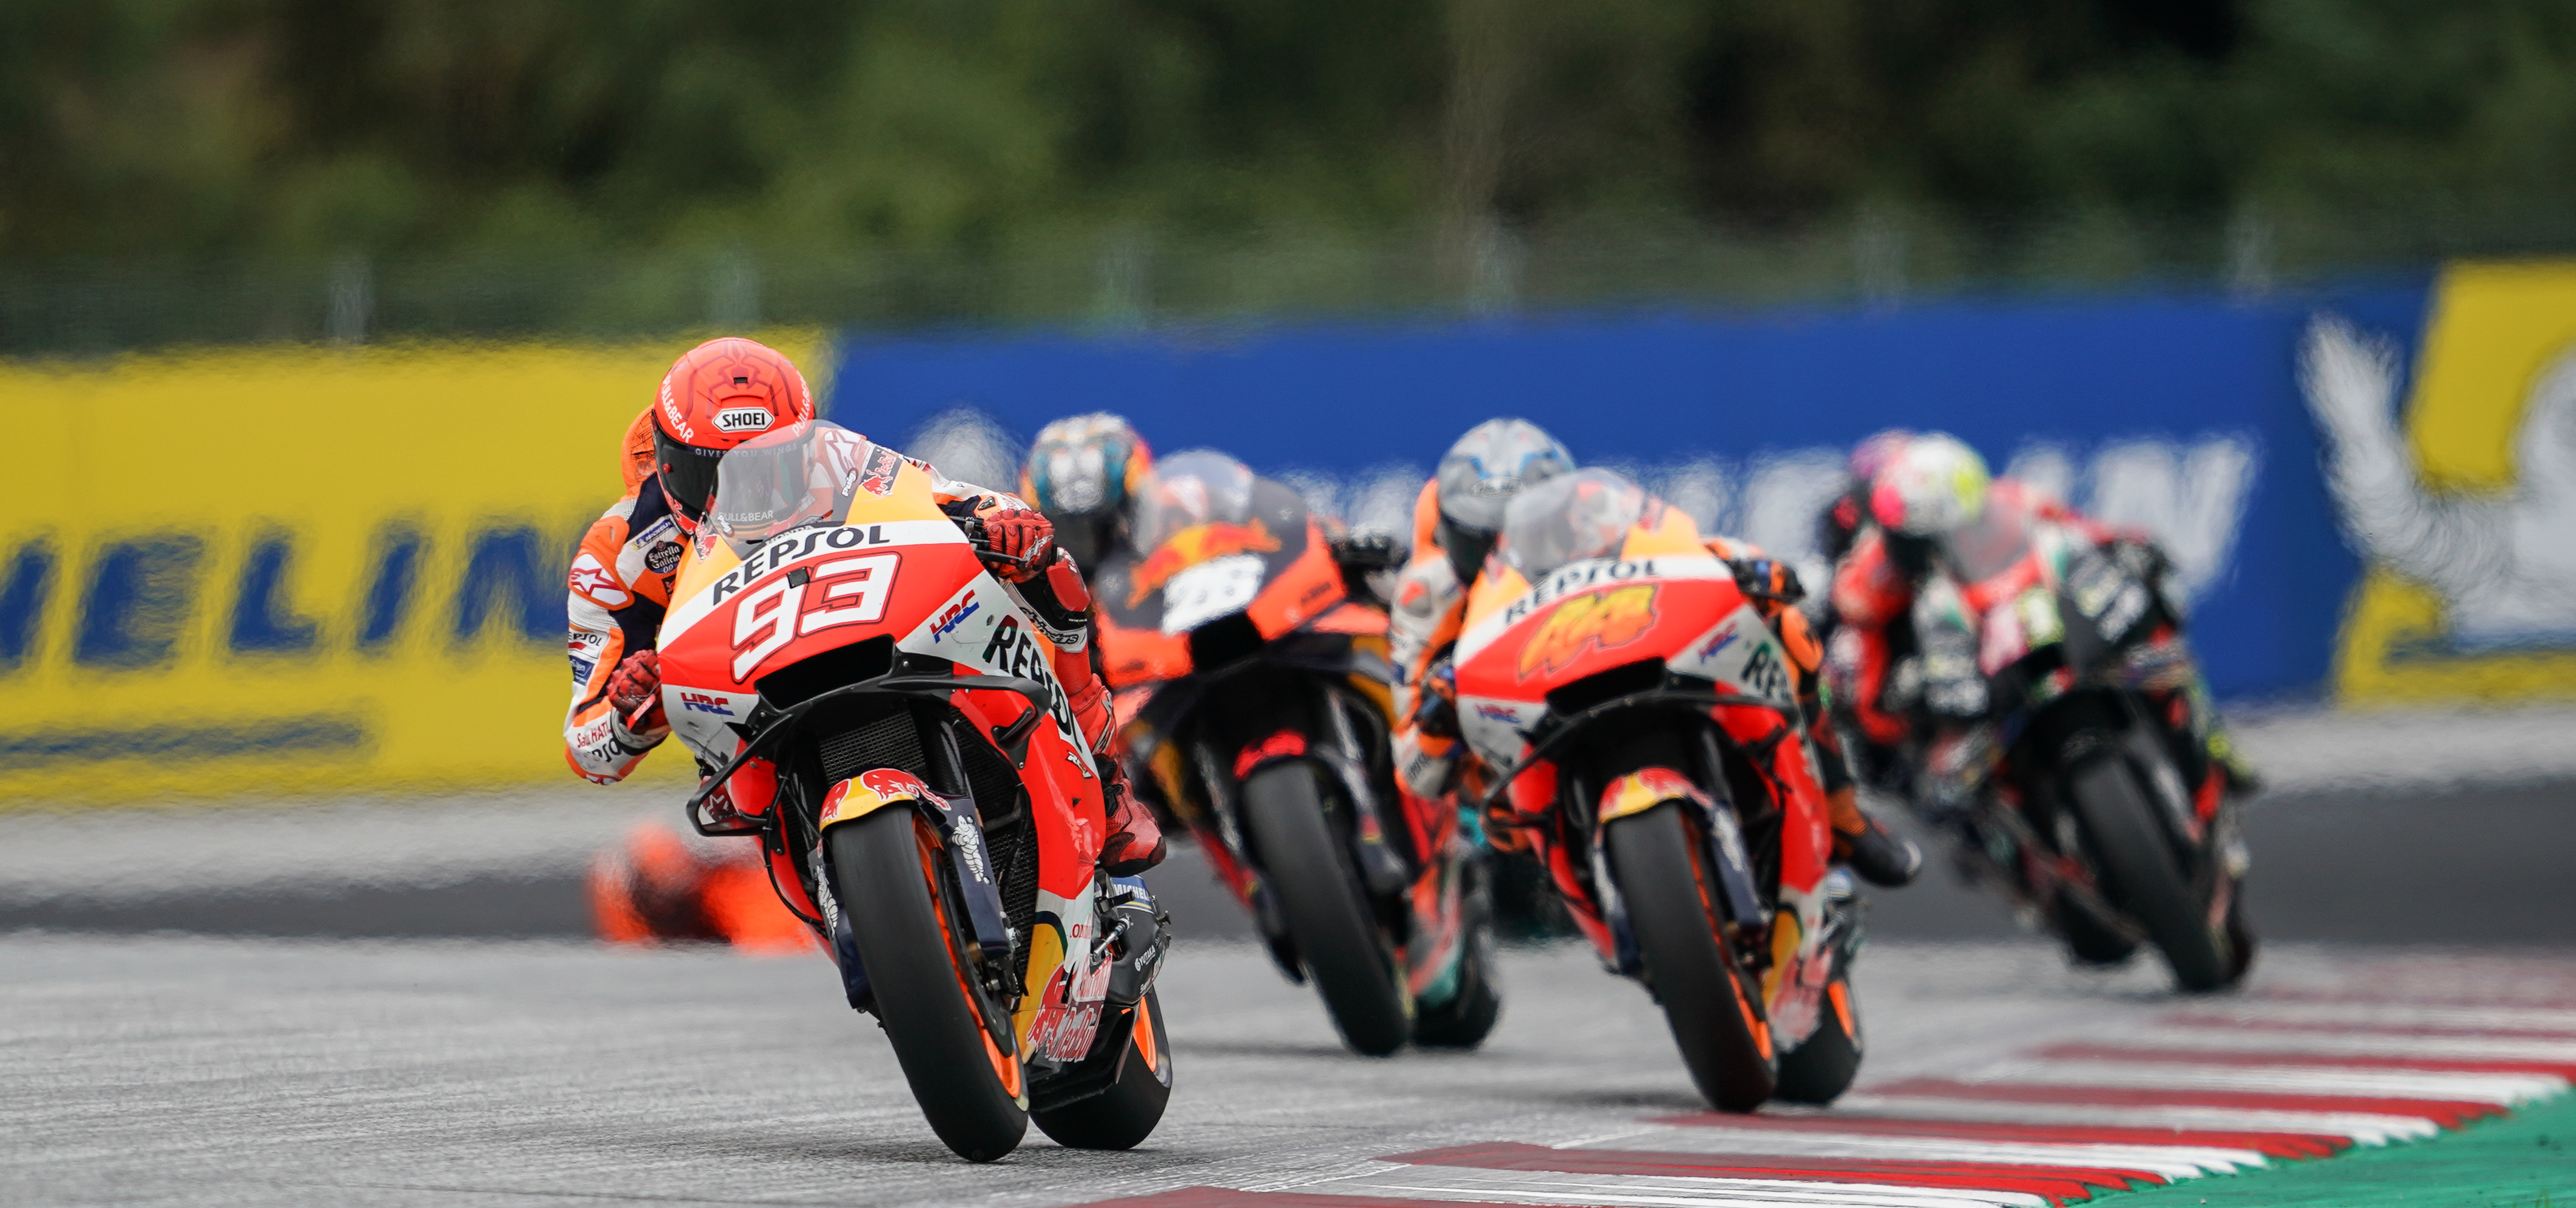 Marc Márquez finishes Styrian Grand Prix eighth